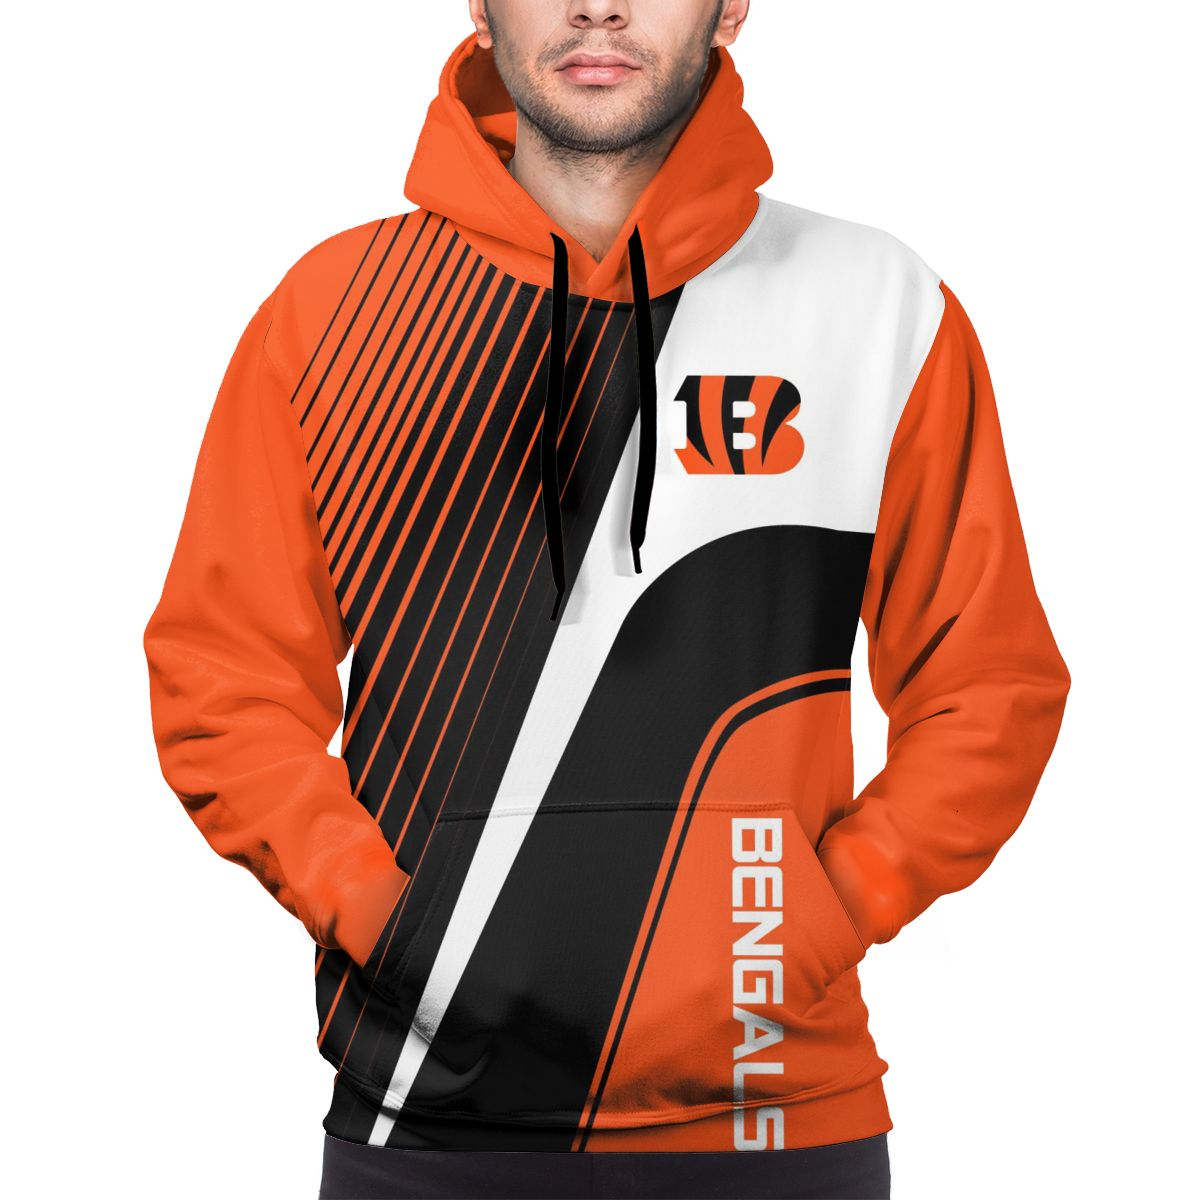 BENGALS Customize Hoodies For Men Pullover Sweatshirt